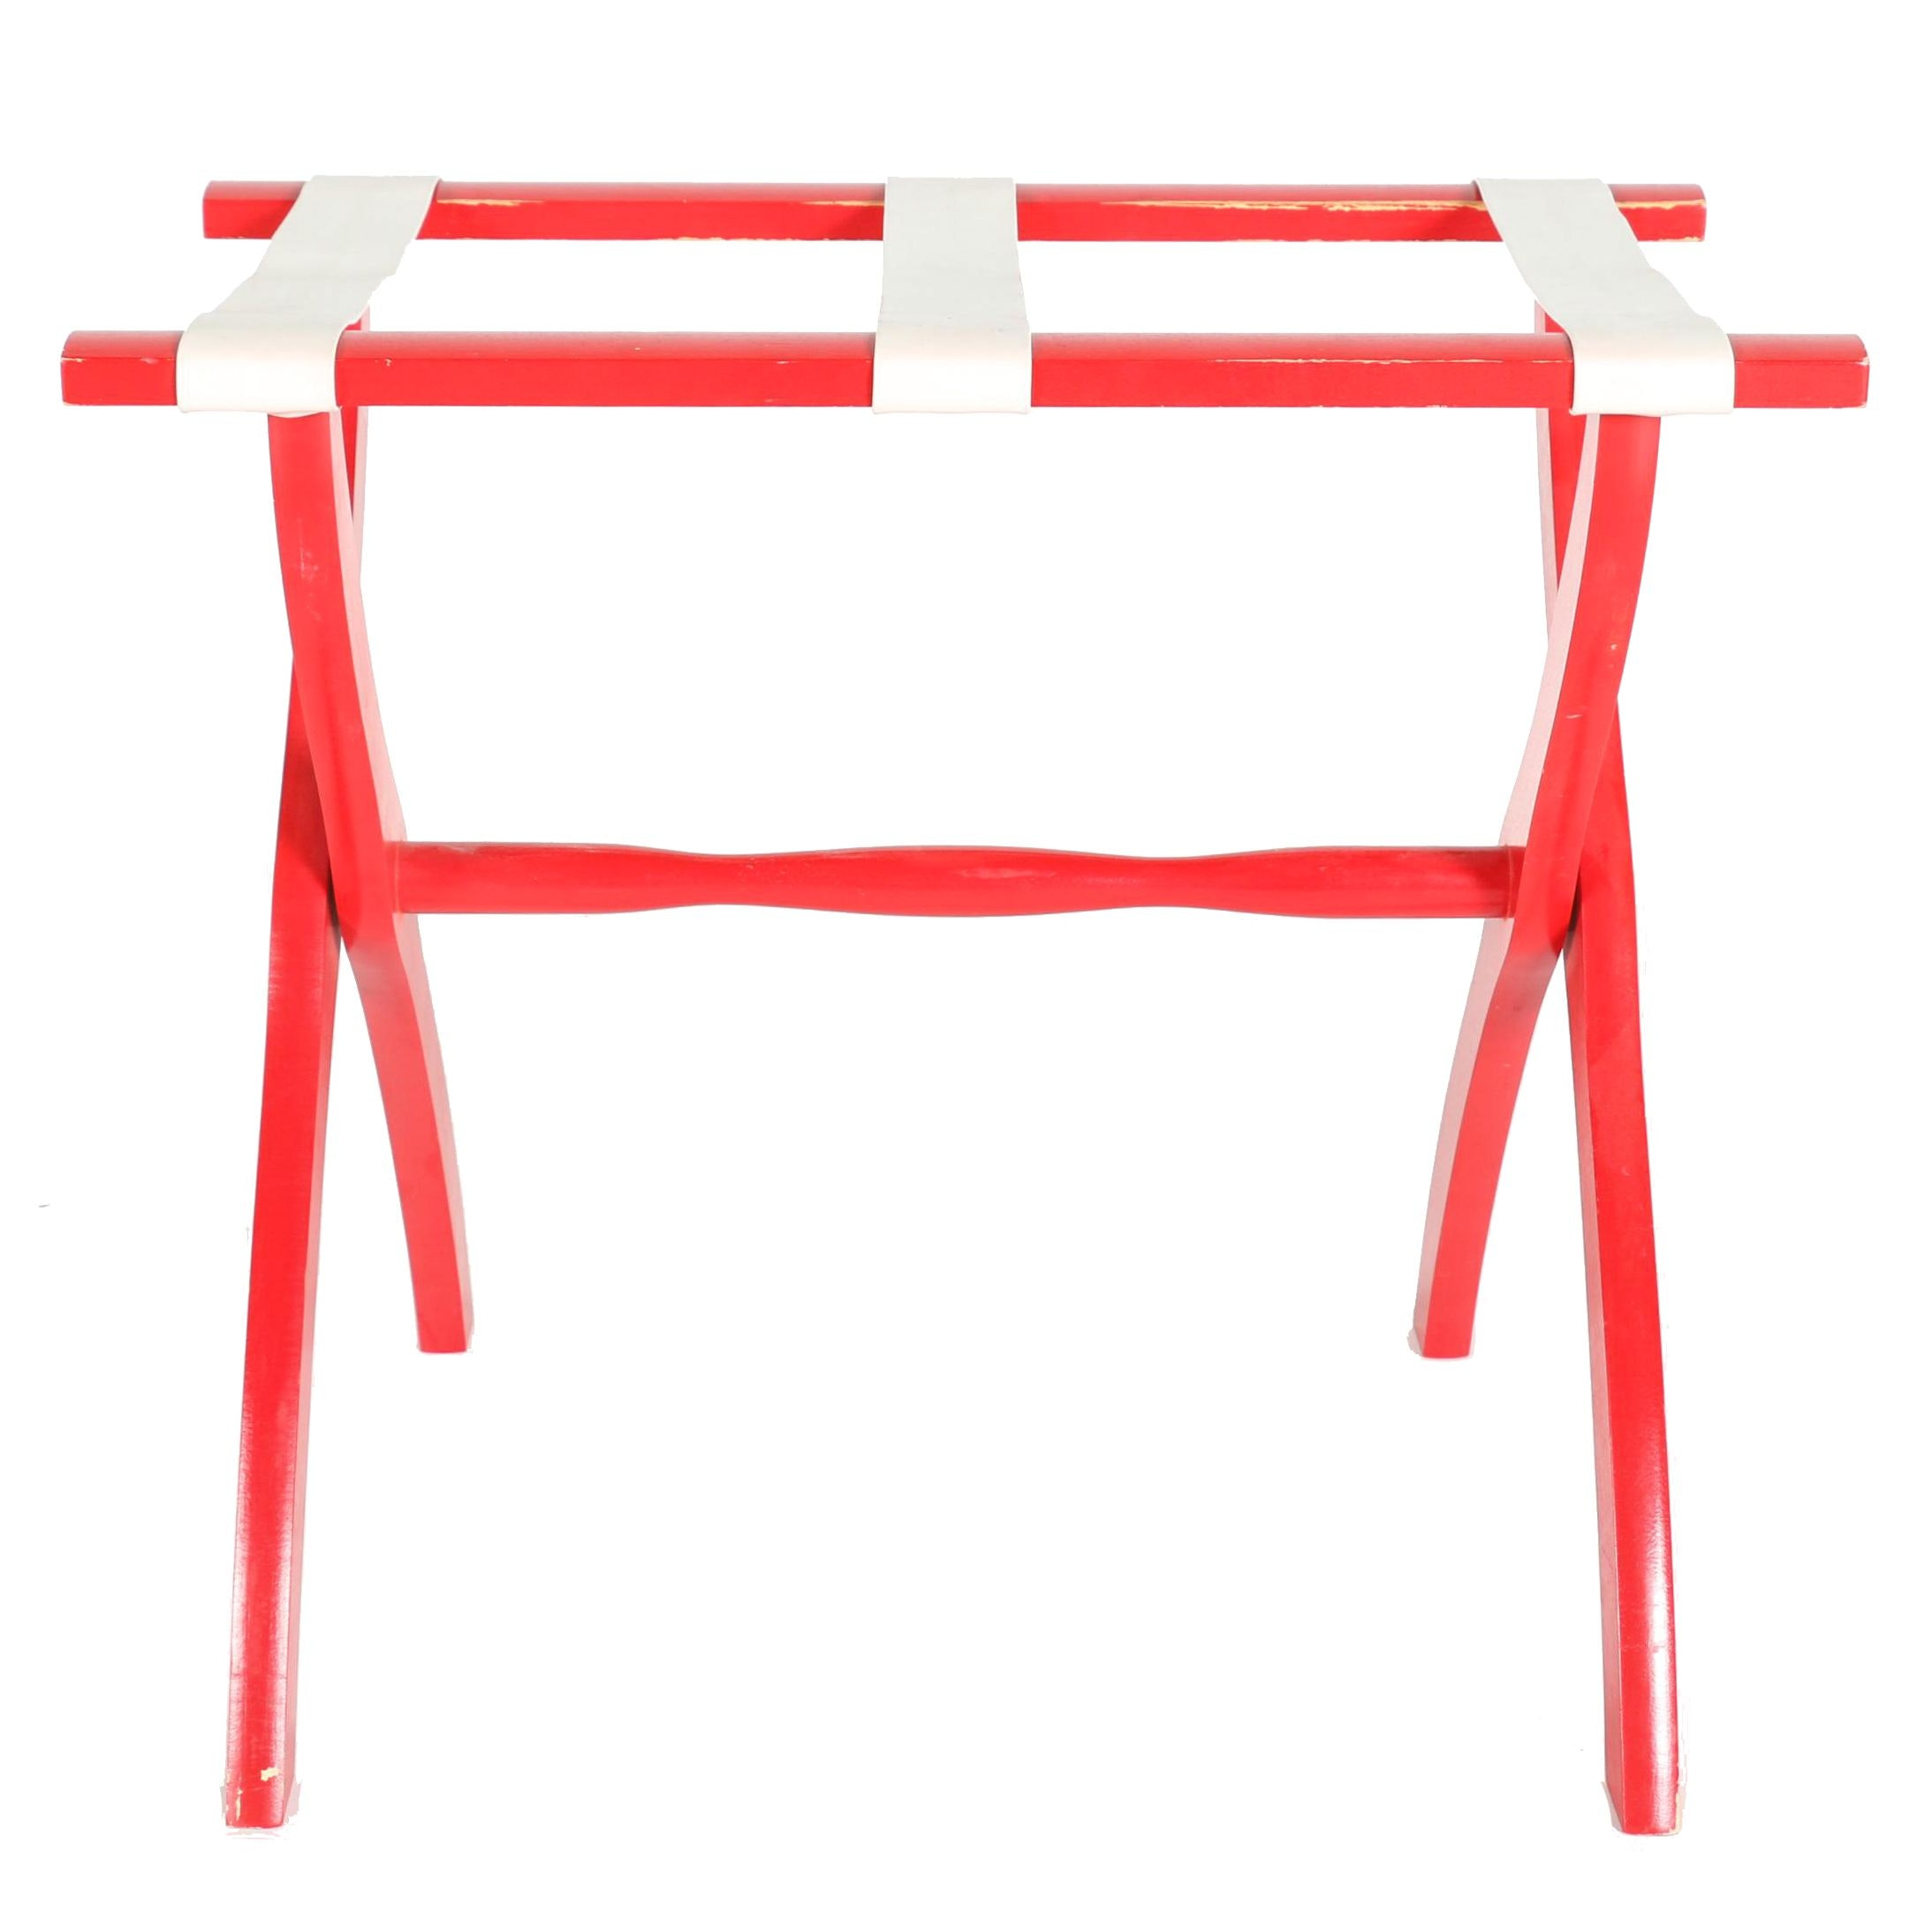 Scheibe Red Luggage Rack